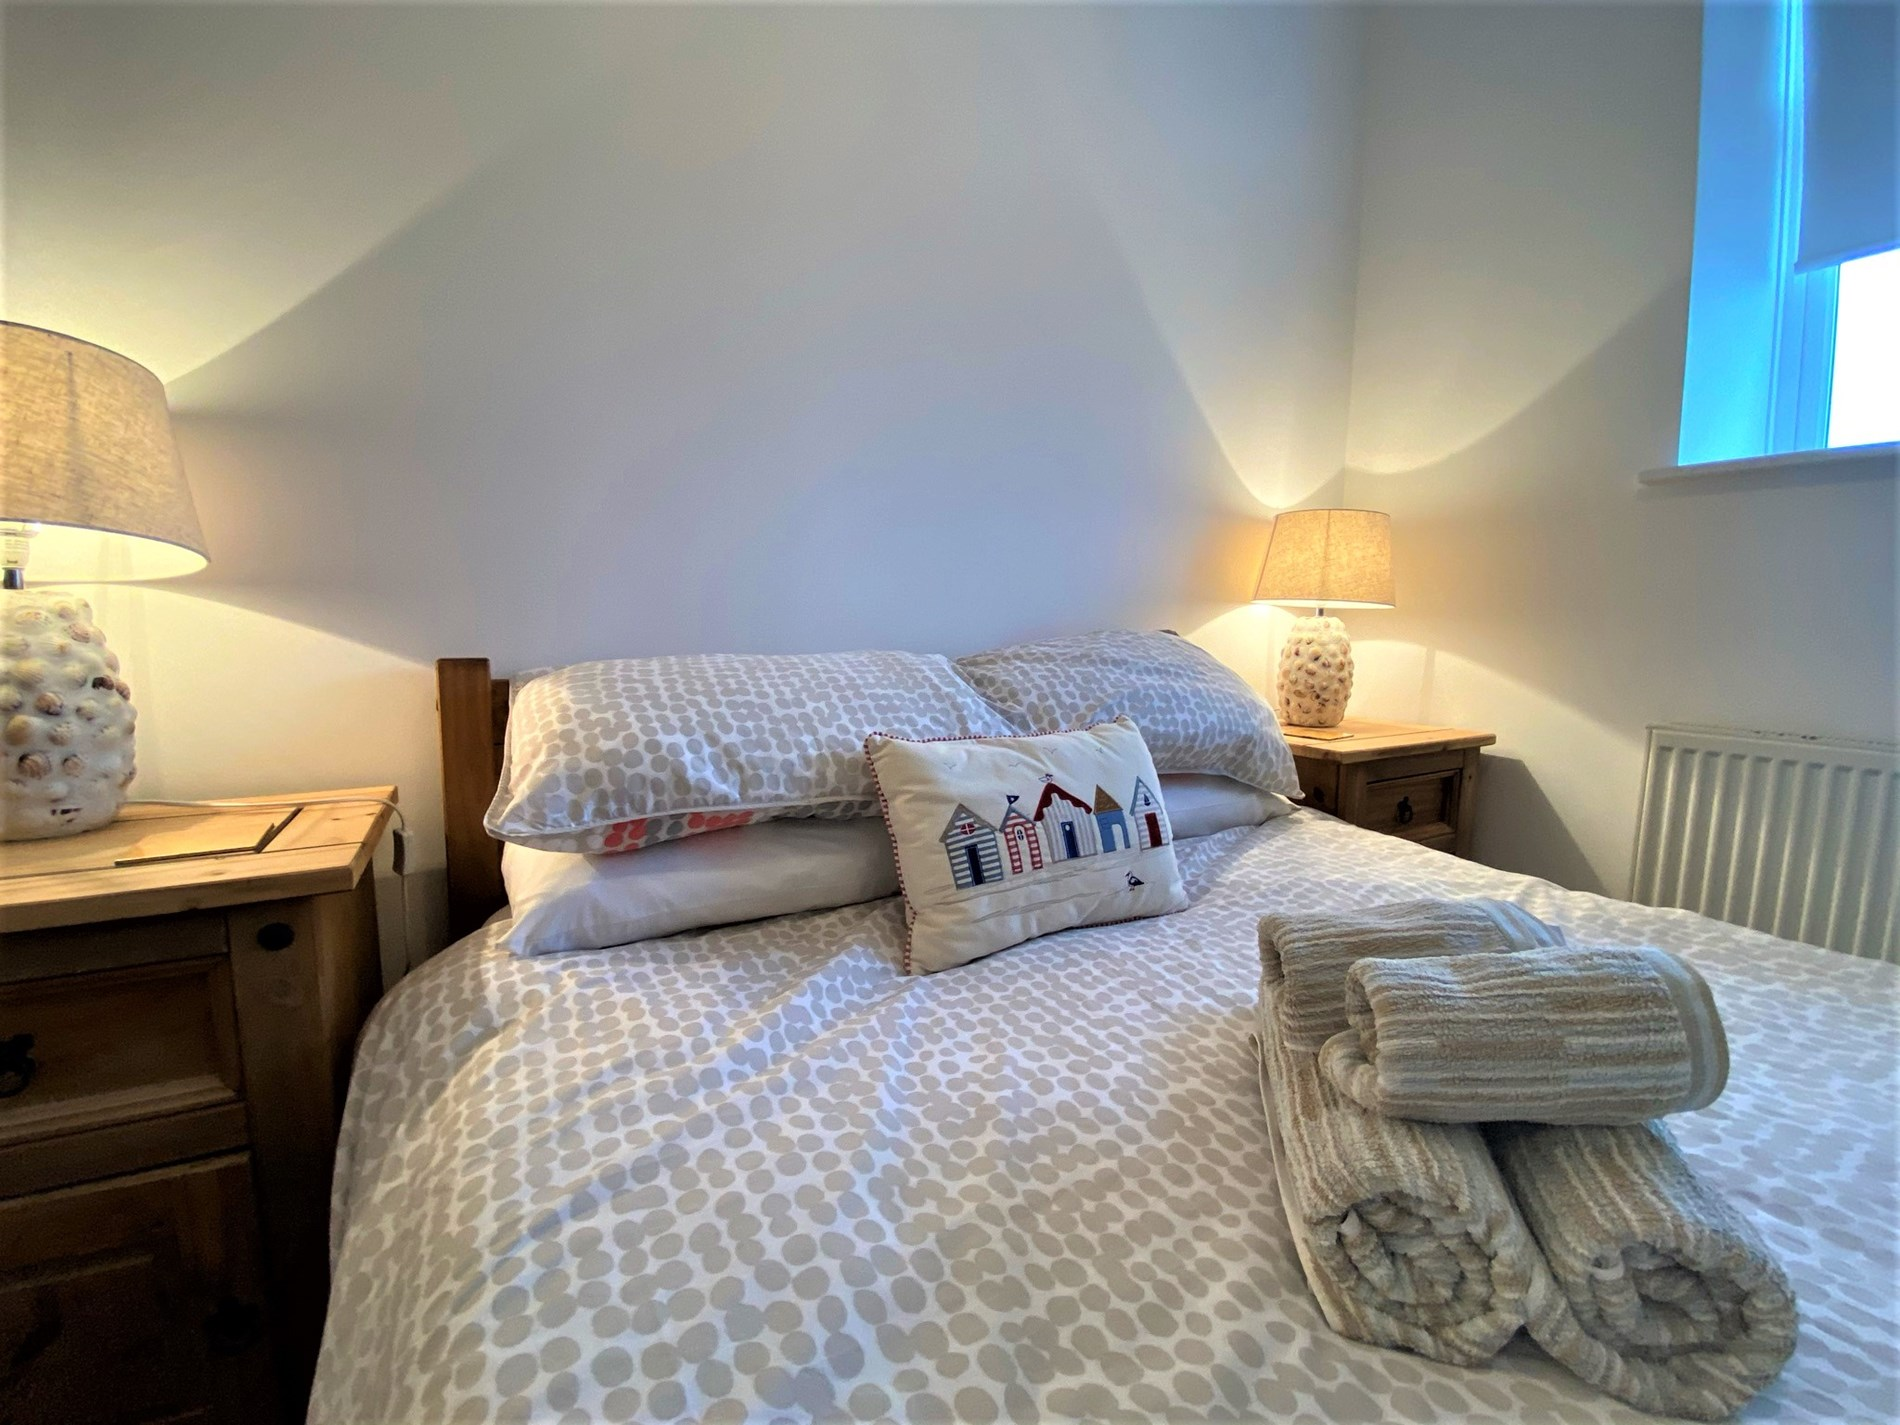 2 Bedroom Cottage in Caernarfon, Snowdonia, North Wales and Cheshire